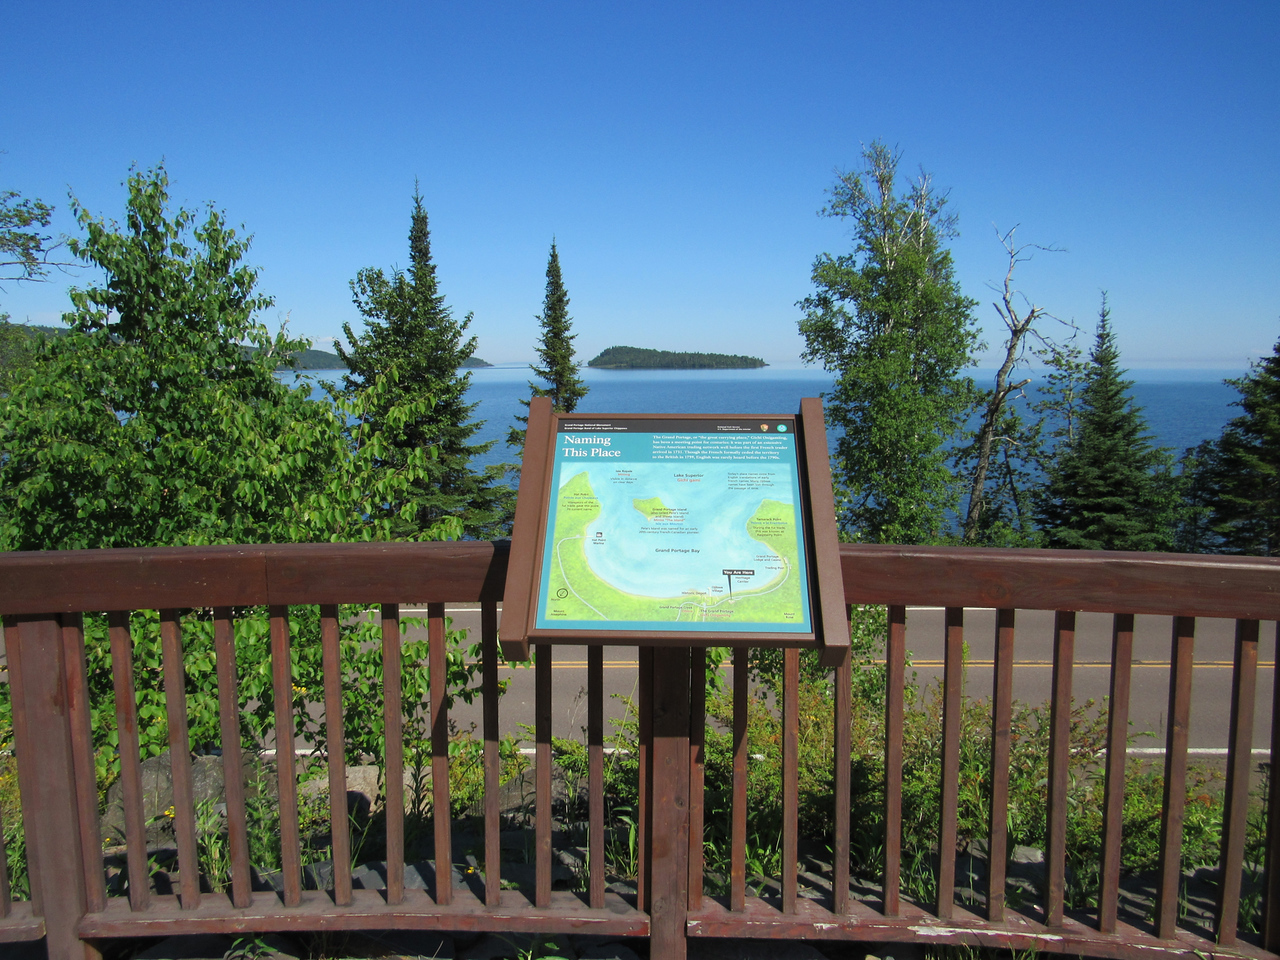 Grand Portage, Minnesota